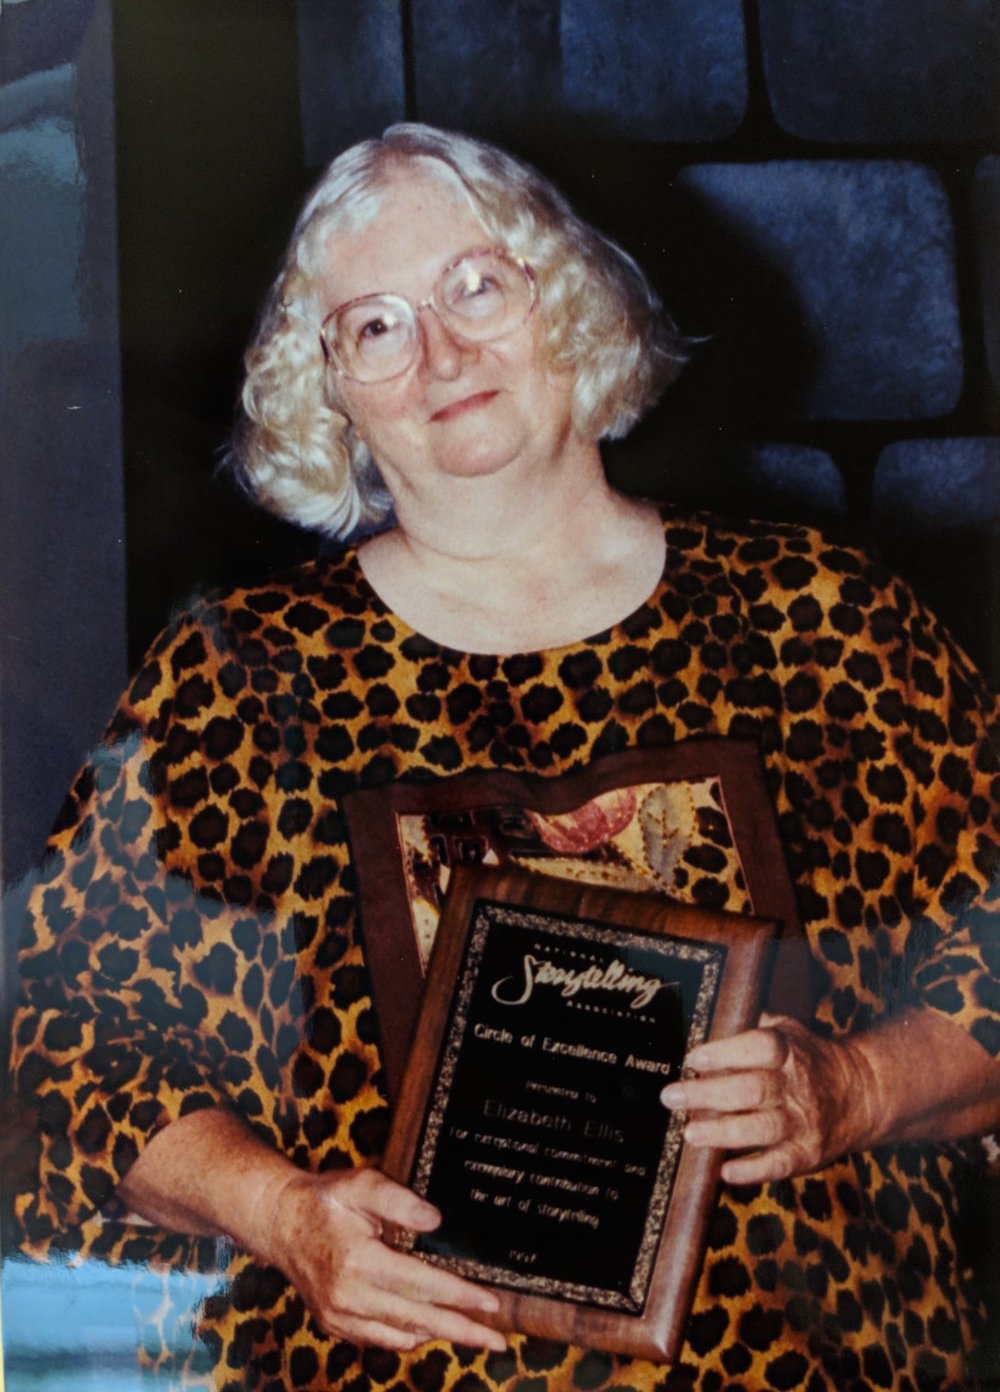 Receiving Circle of Excellence Award, 1997. Image Courtesy of American Folklife Center at the Library of Congress. Used by permission from the International Storytelling Center and Elizabeth Ellis.